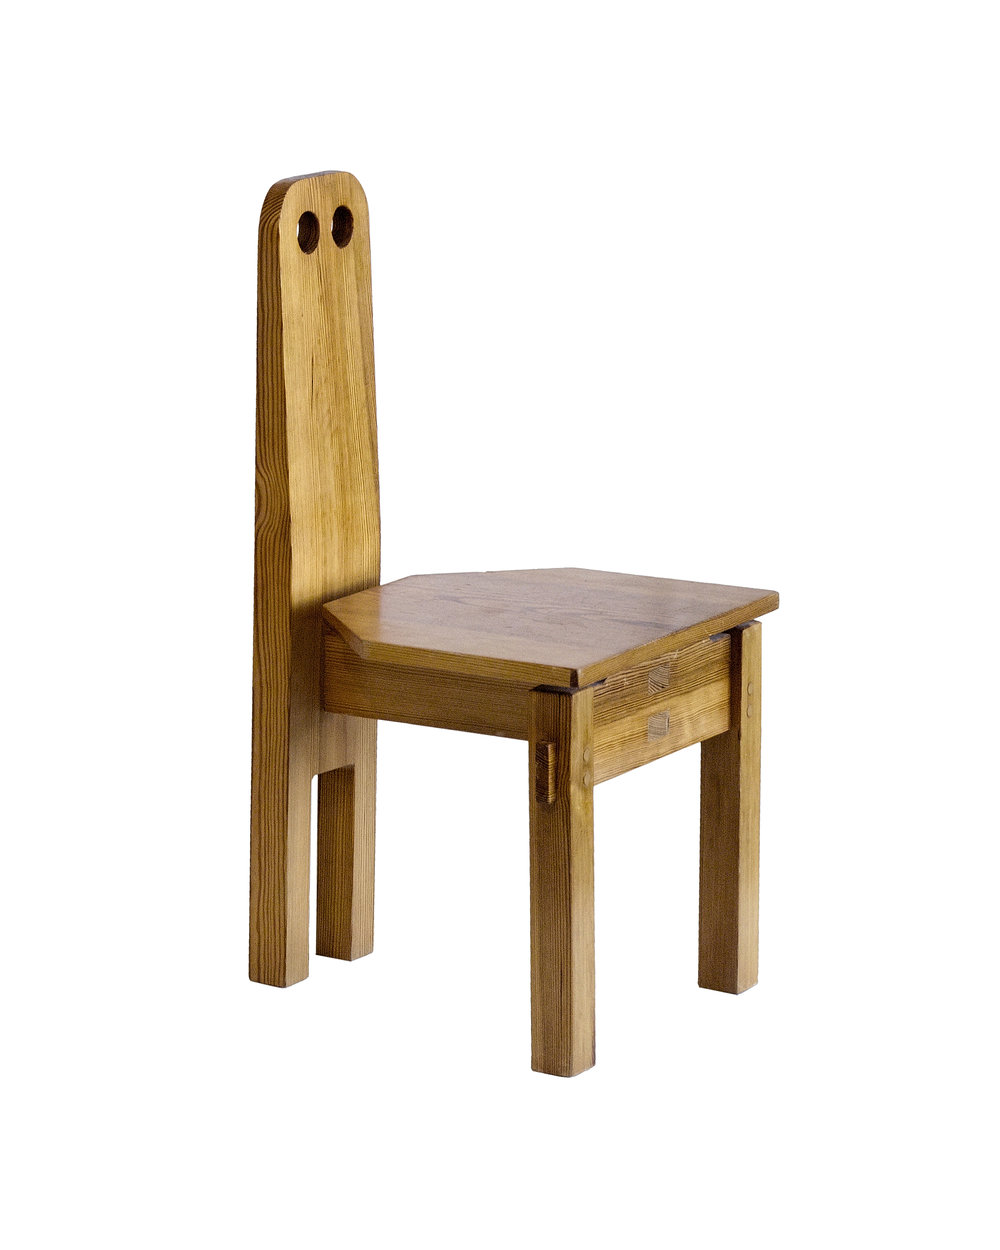 Dieter Gullert Children's Chairs Dieter Gullert Germany 1967 Wood H 27.5 in, W 13.75 in, D 15.5 in (SH 9.5 in)  LIST PRICE: $3,500 DESIGNER DISCOUNT PRICE: $2,975 LEAD TIME: 3-5 Days Shipping & Handling QUANTITY IN STOCK: 2 ONLINE PLATFORMS: kM Web, Artsy, 1st Dibs